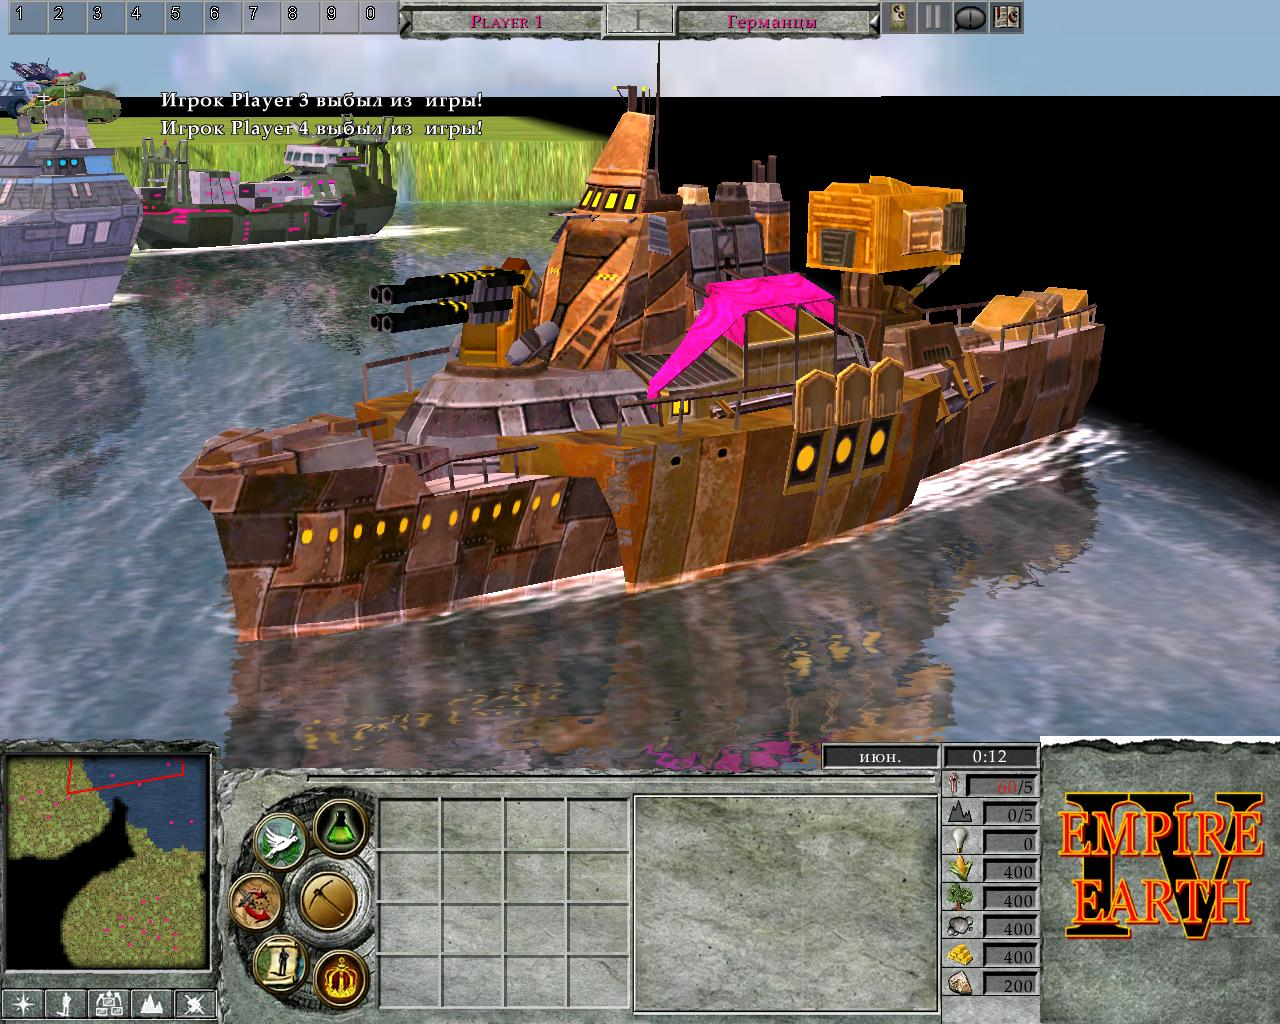 For such a derivative game, Empire Earth does have a few nice twists. As in Age of Empires, you can build wonders of the world for an alternate victory condition. But like wonders in Civilization, each one actually gives you an advantage. There is an adjustable unit limit, but it's a global figure split among all surviving civilizations.